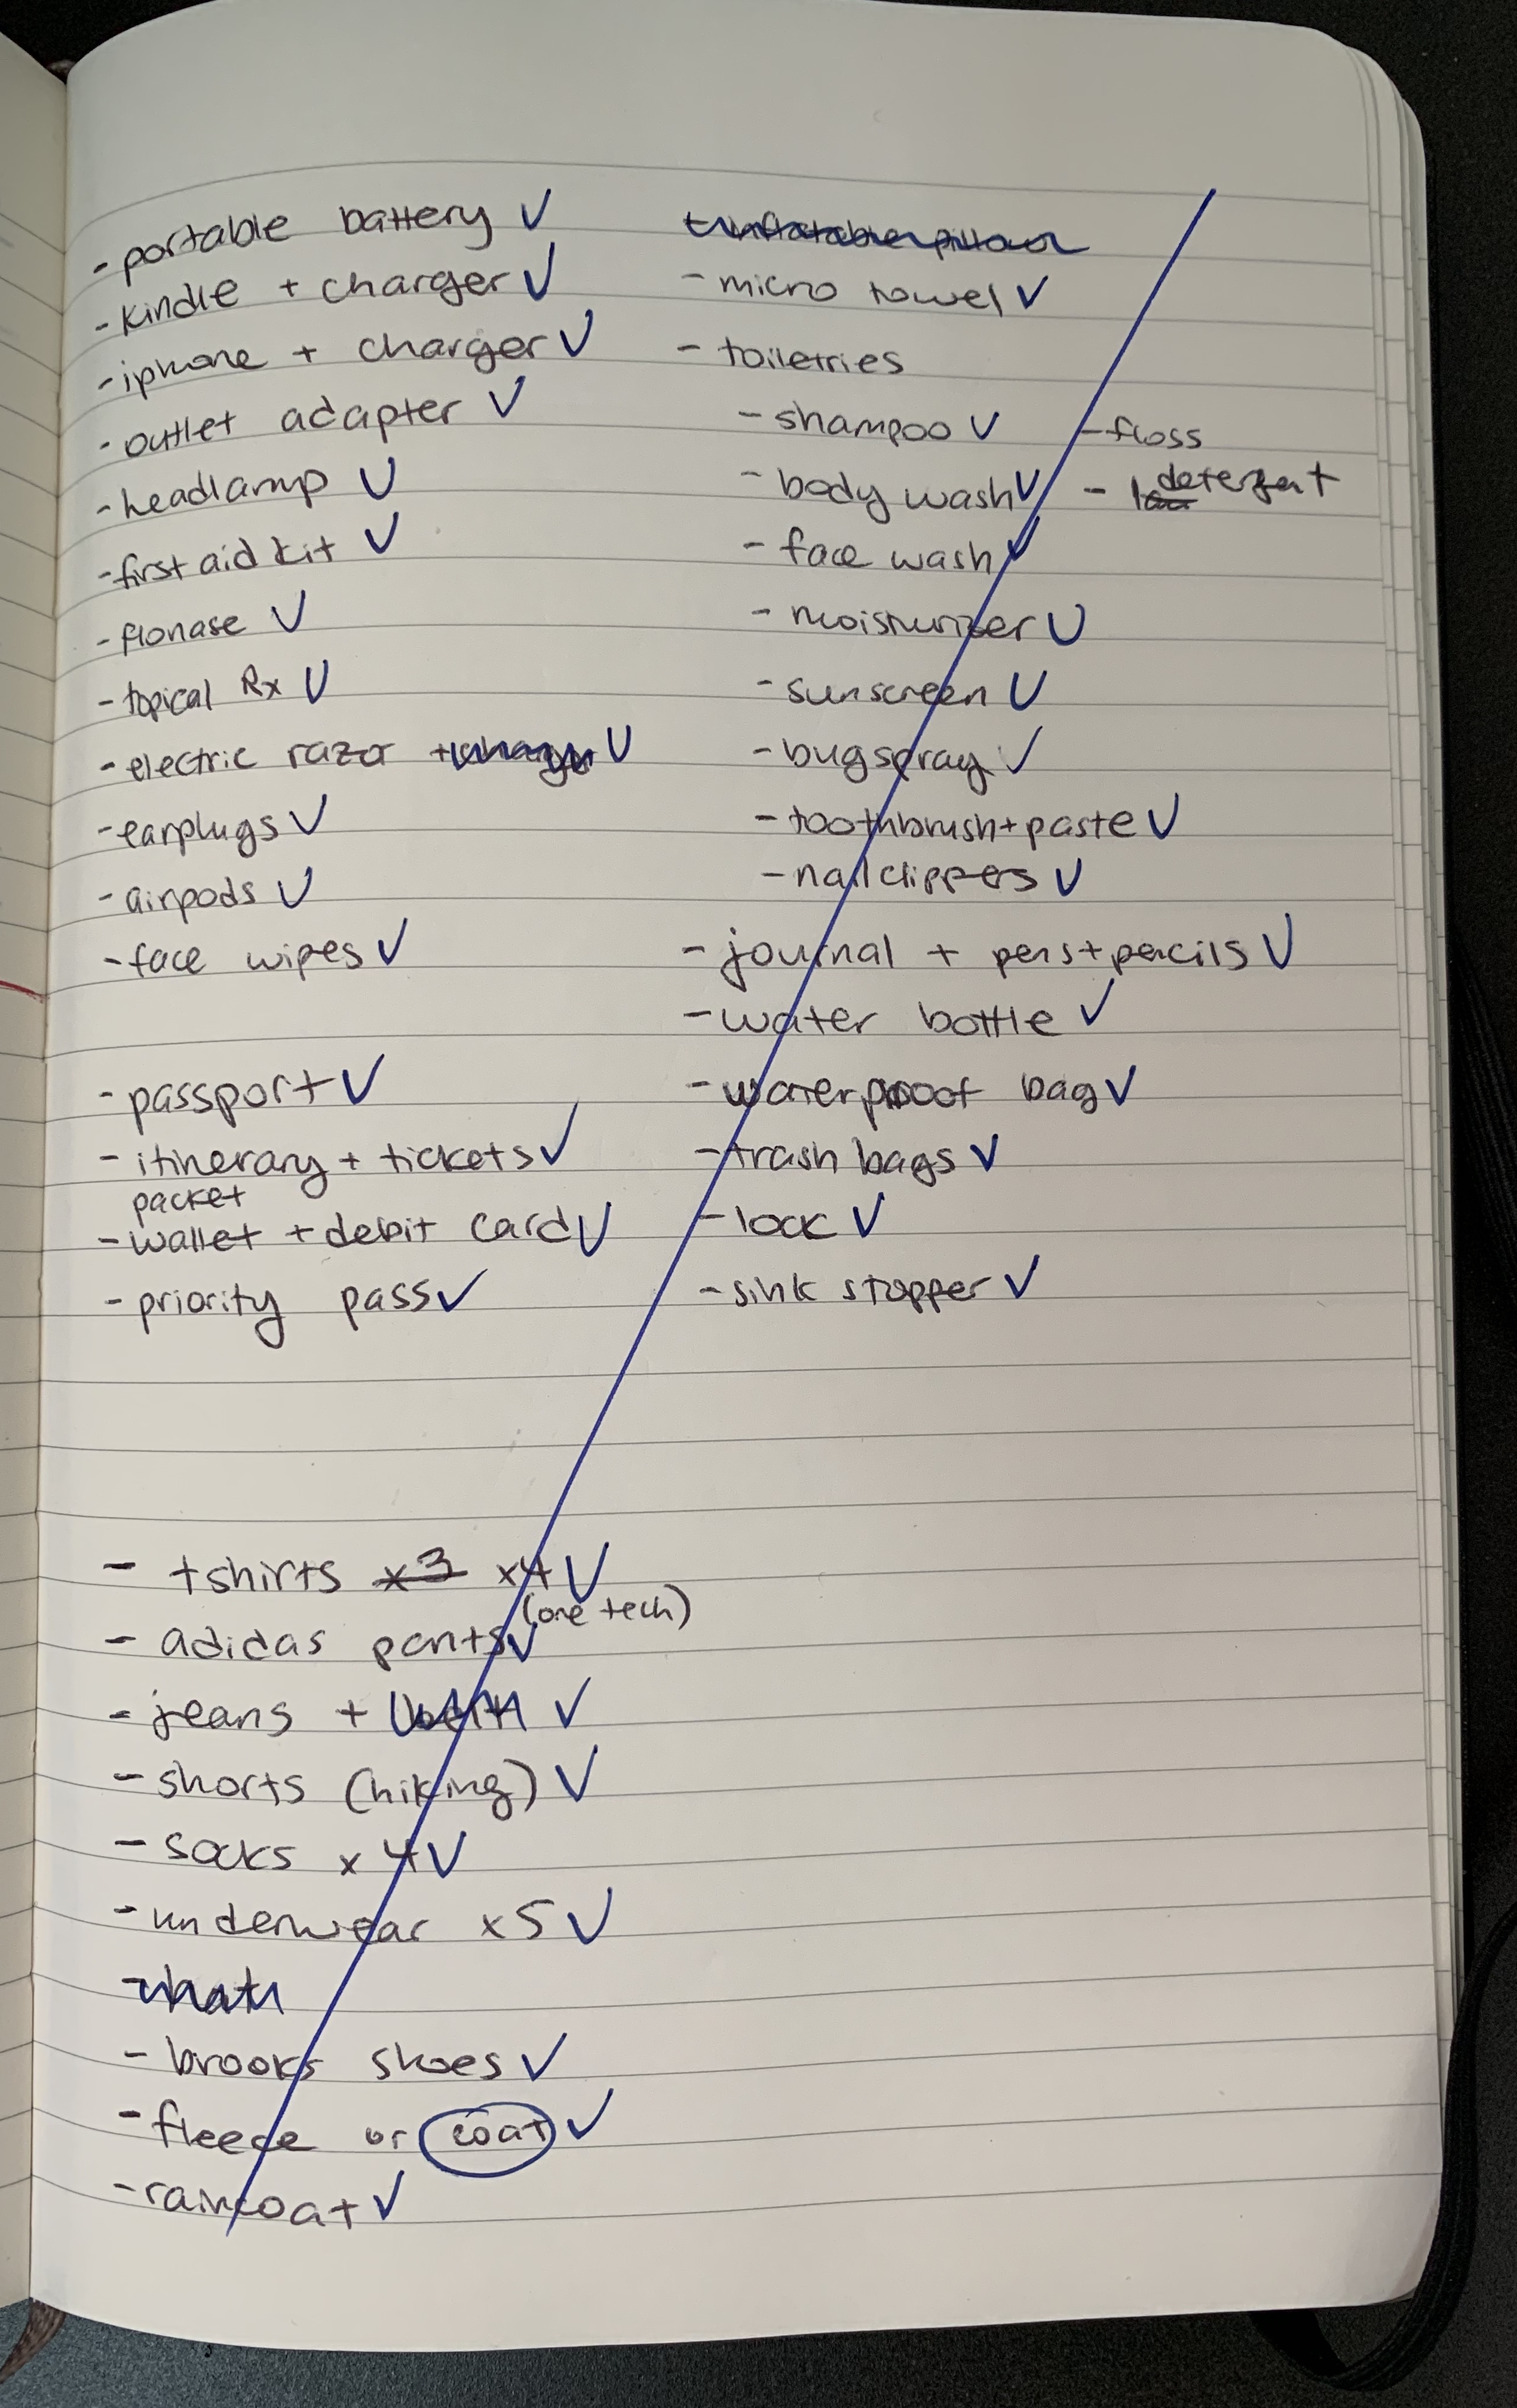 My packing list for the Trans-Siberian Railway trip.